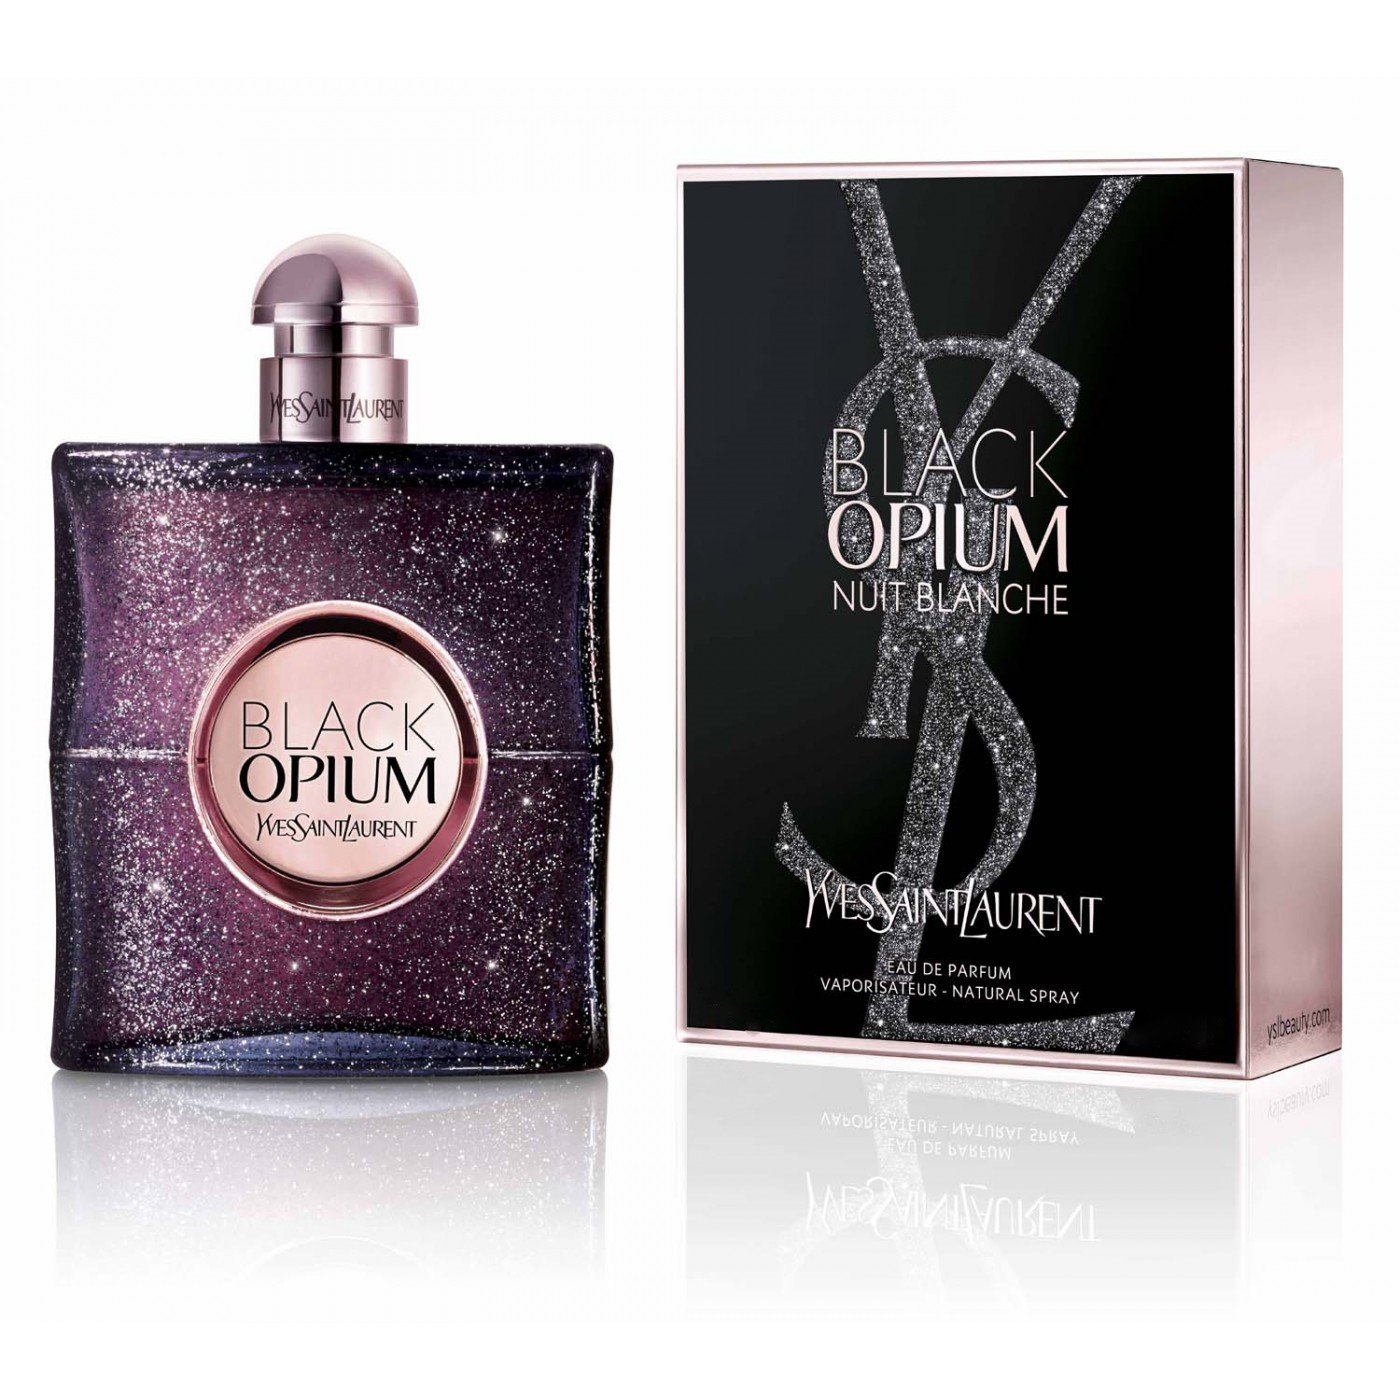 Парфюмерная вода Yves Saint Laurent Opium Black Nuit Blanche 30ml фото